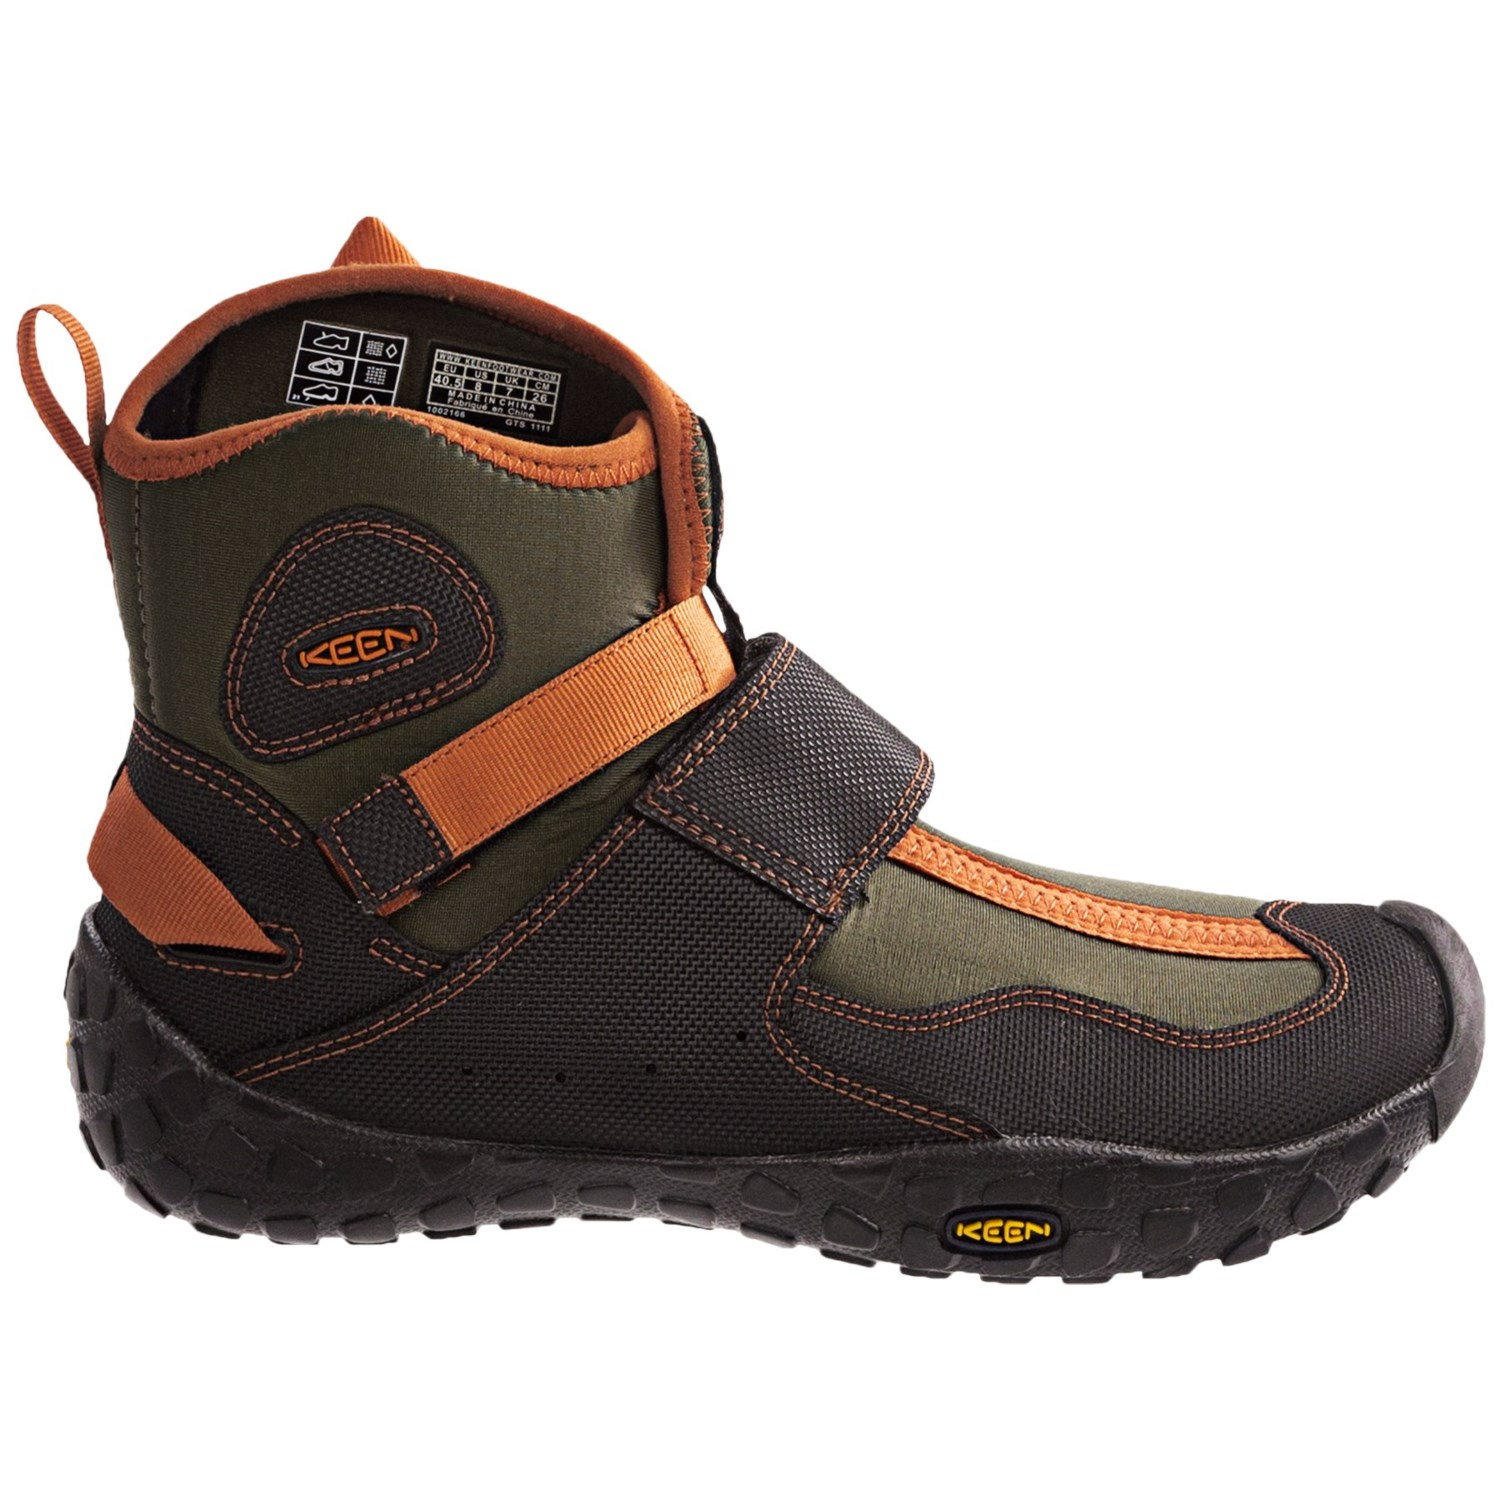 Water Shoes Slippers Boots Hiking Boots Casual Boots Rain Boots Winter Boots Mountaineering Boots Work Boots Keen Kühl Marmot Merrell Oboz Osprey Outdoor Research Petzl Prana Salomon SmartWool Sorel Teva The North Face.